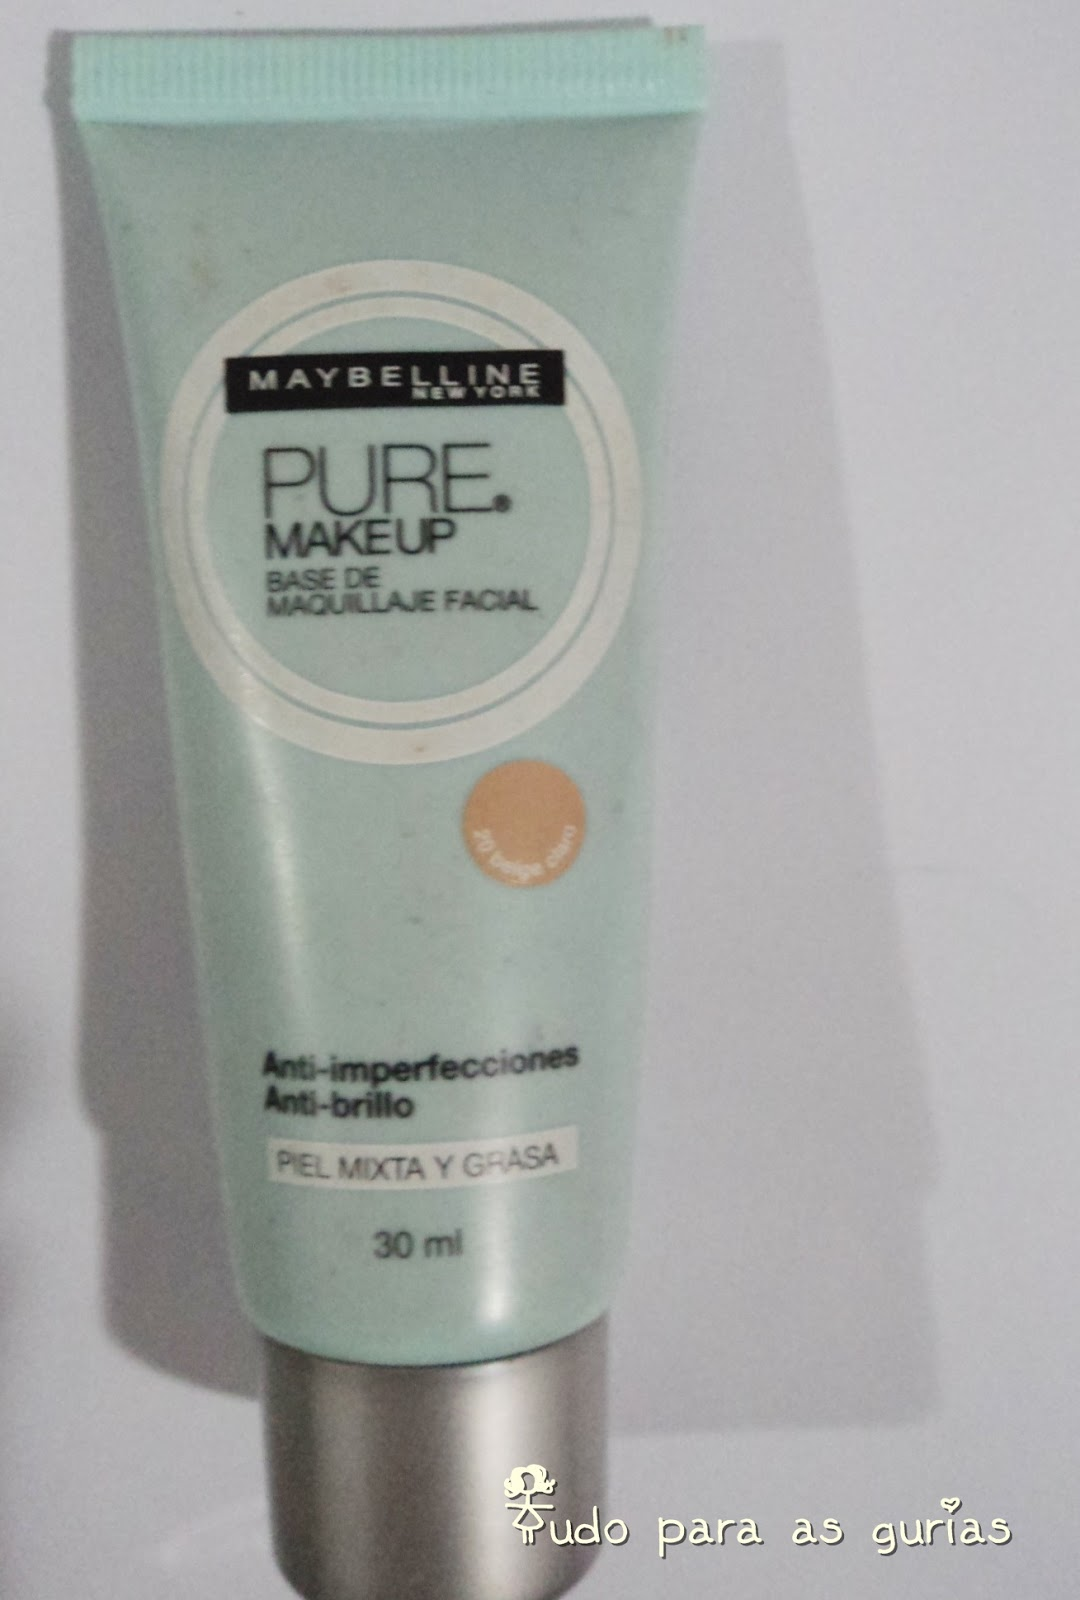 Pure makeup da Maybelline.